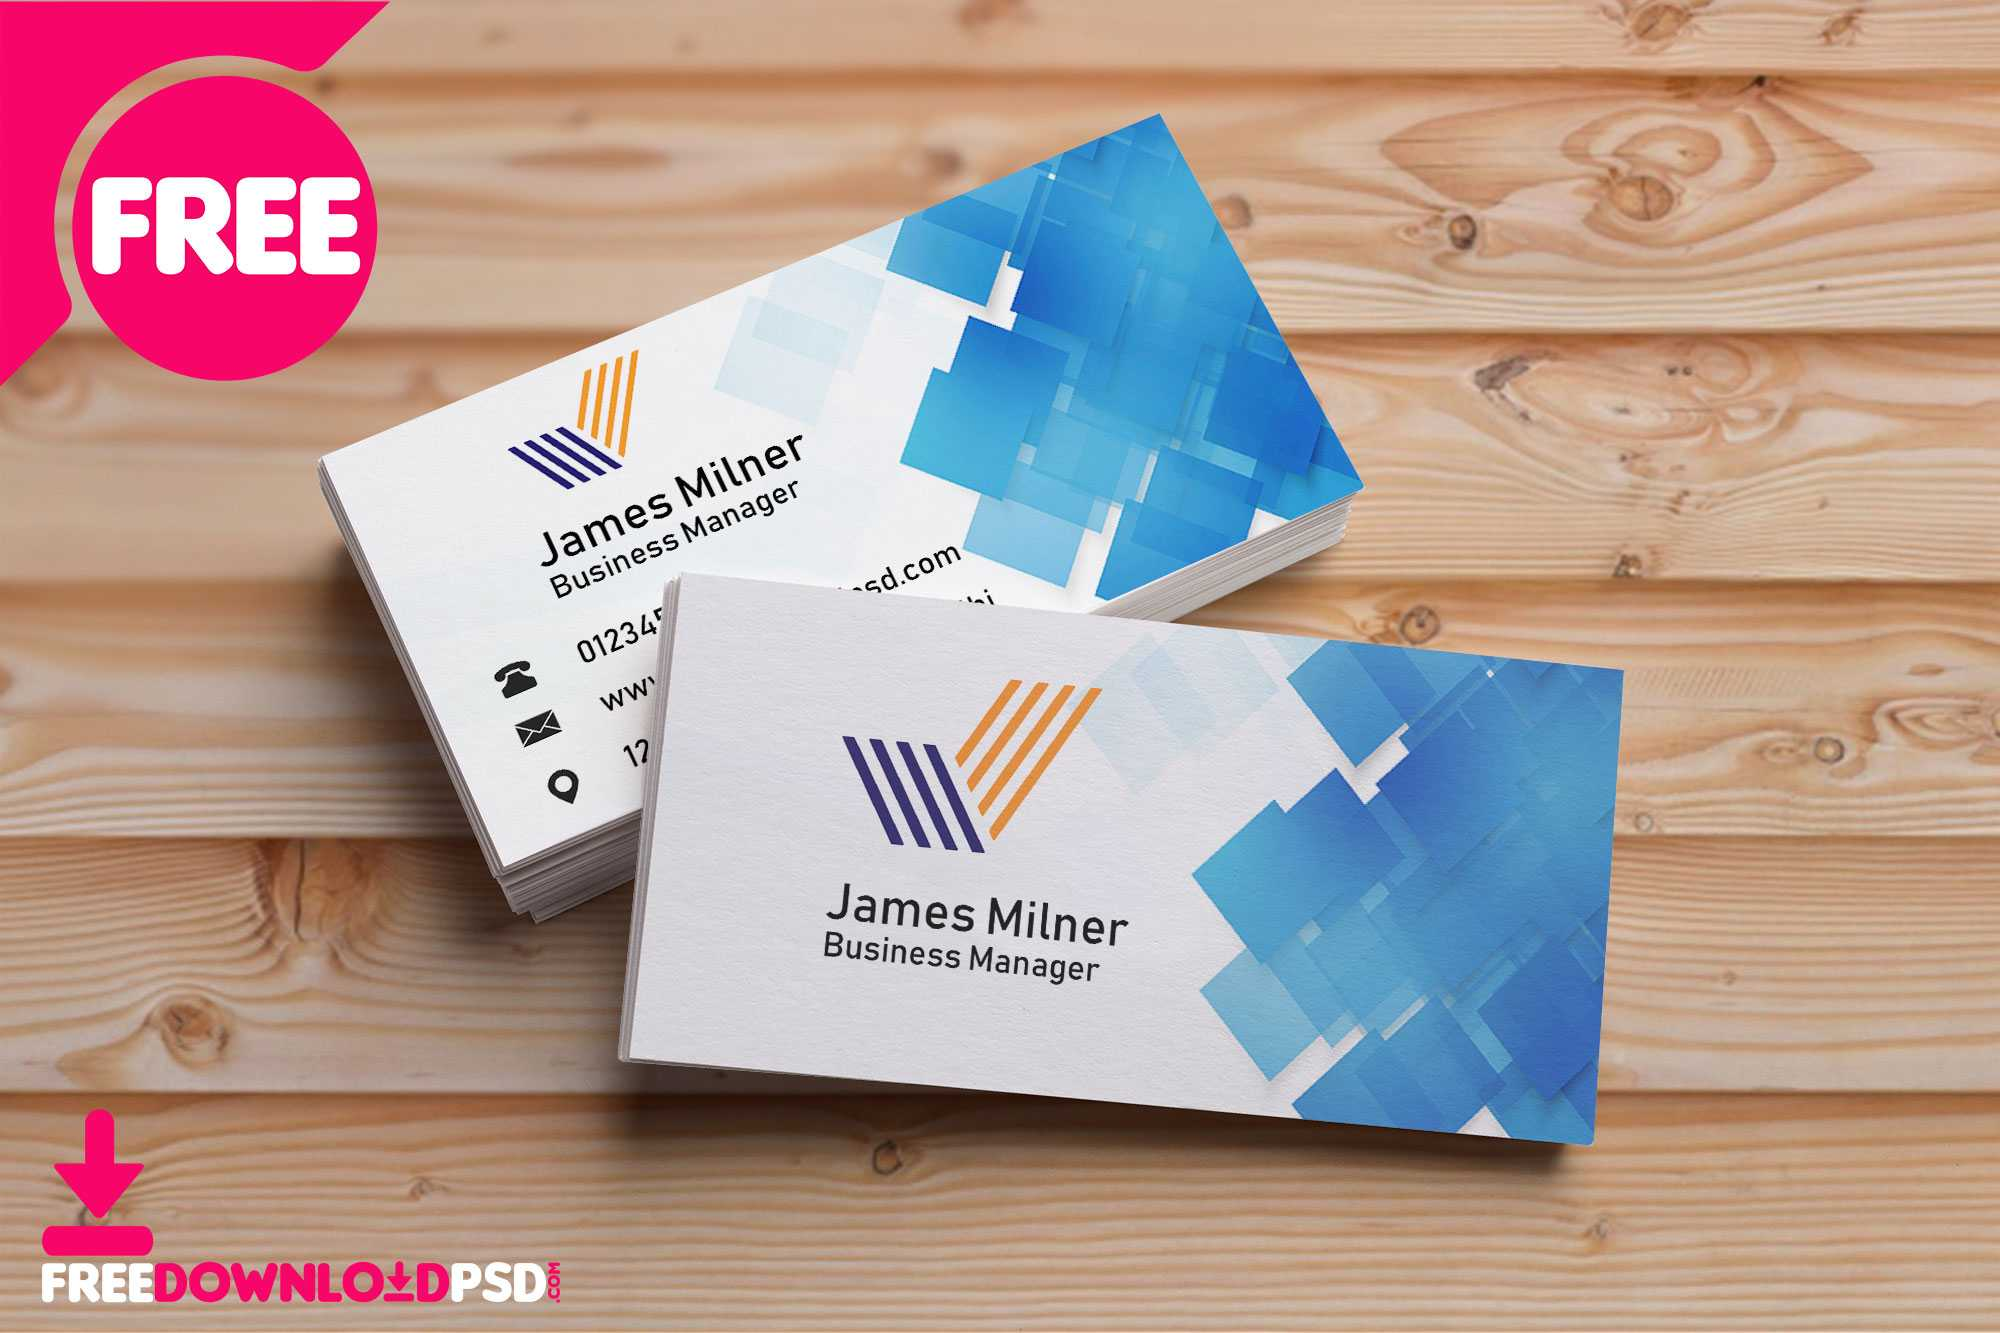 019 Office Business Card Template Phenomenal Ideas Officemax Inside Office Max Business Card Template